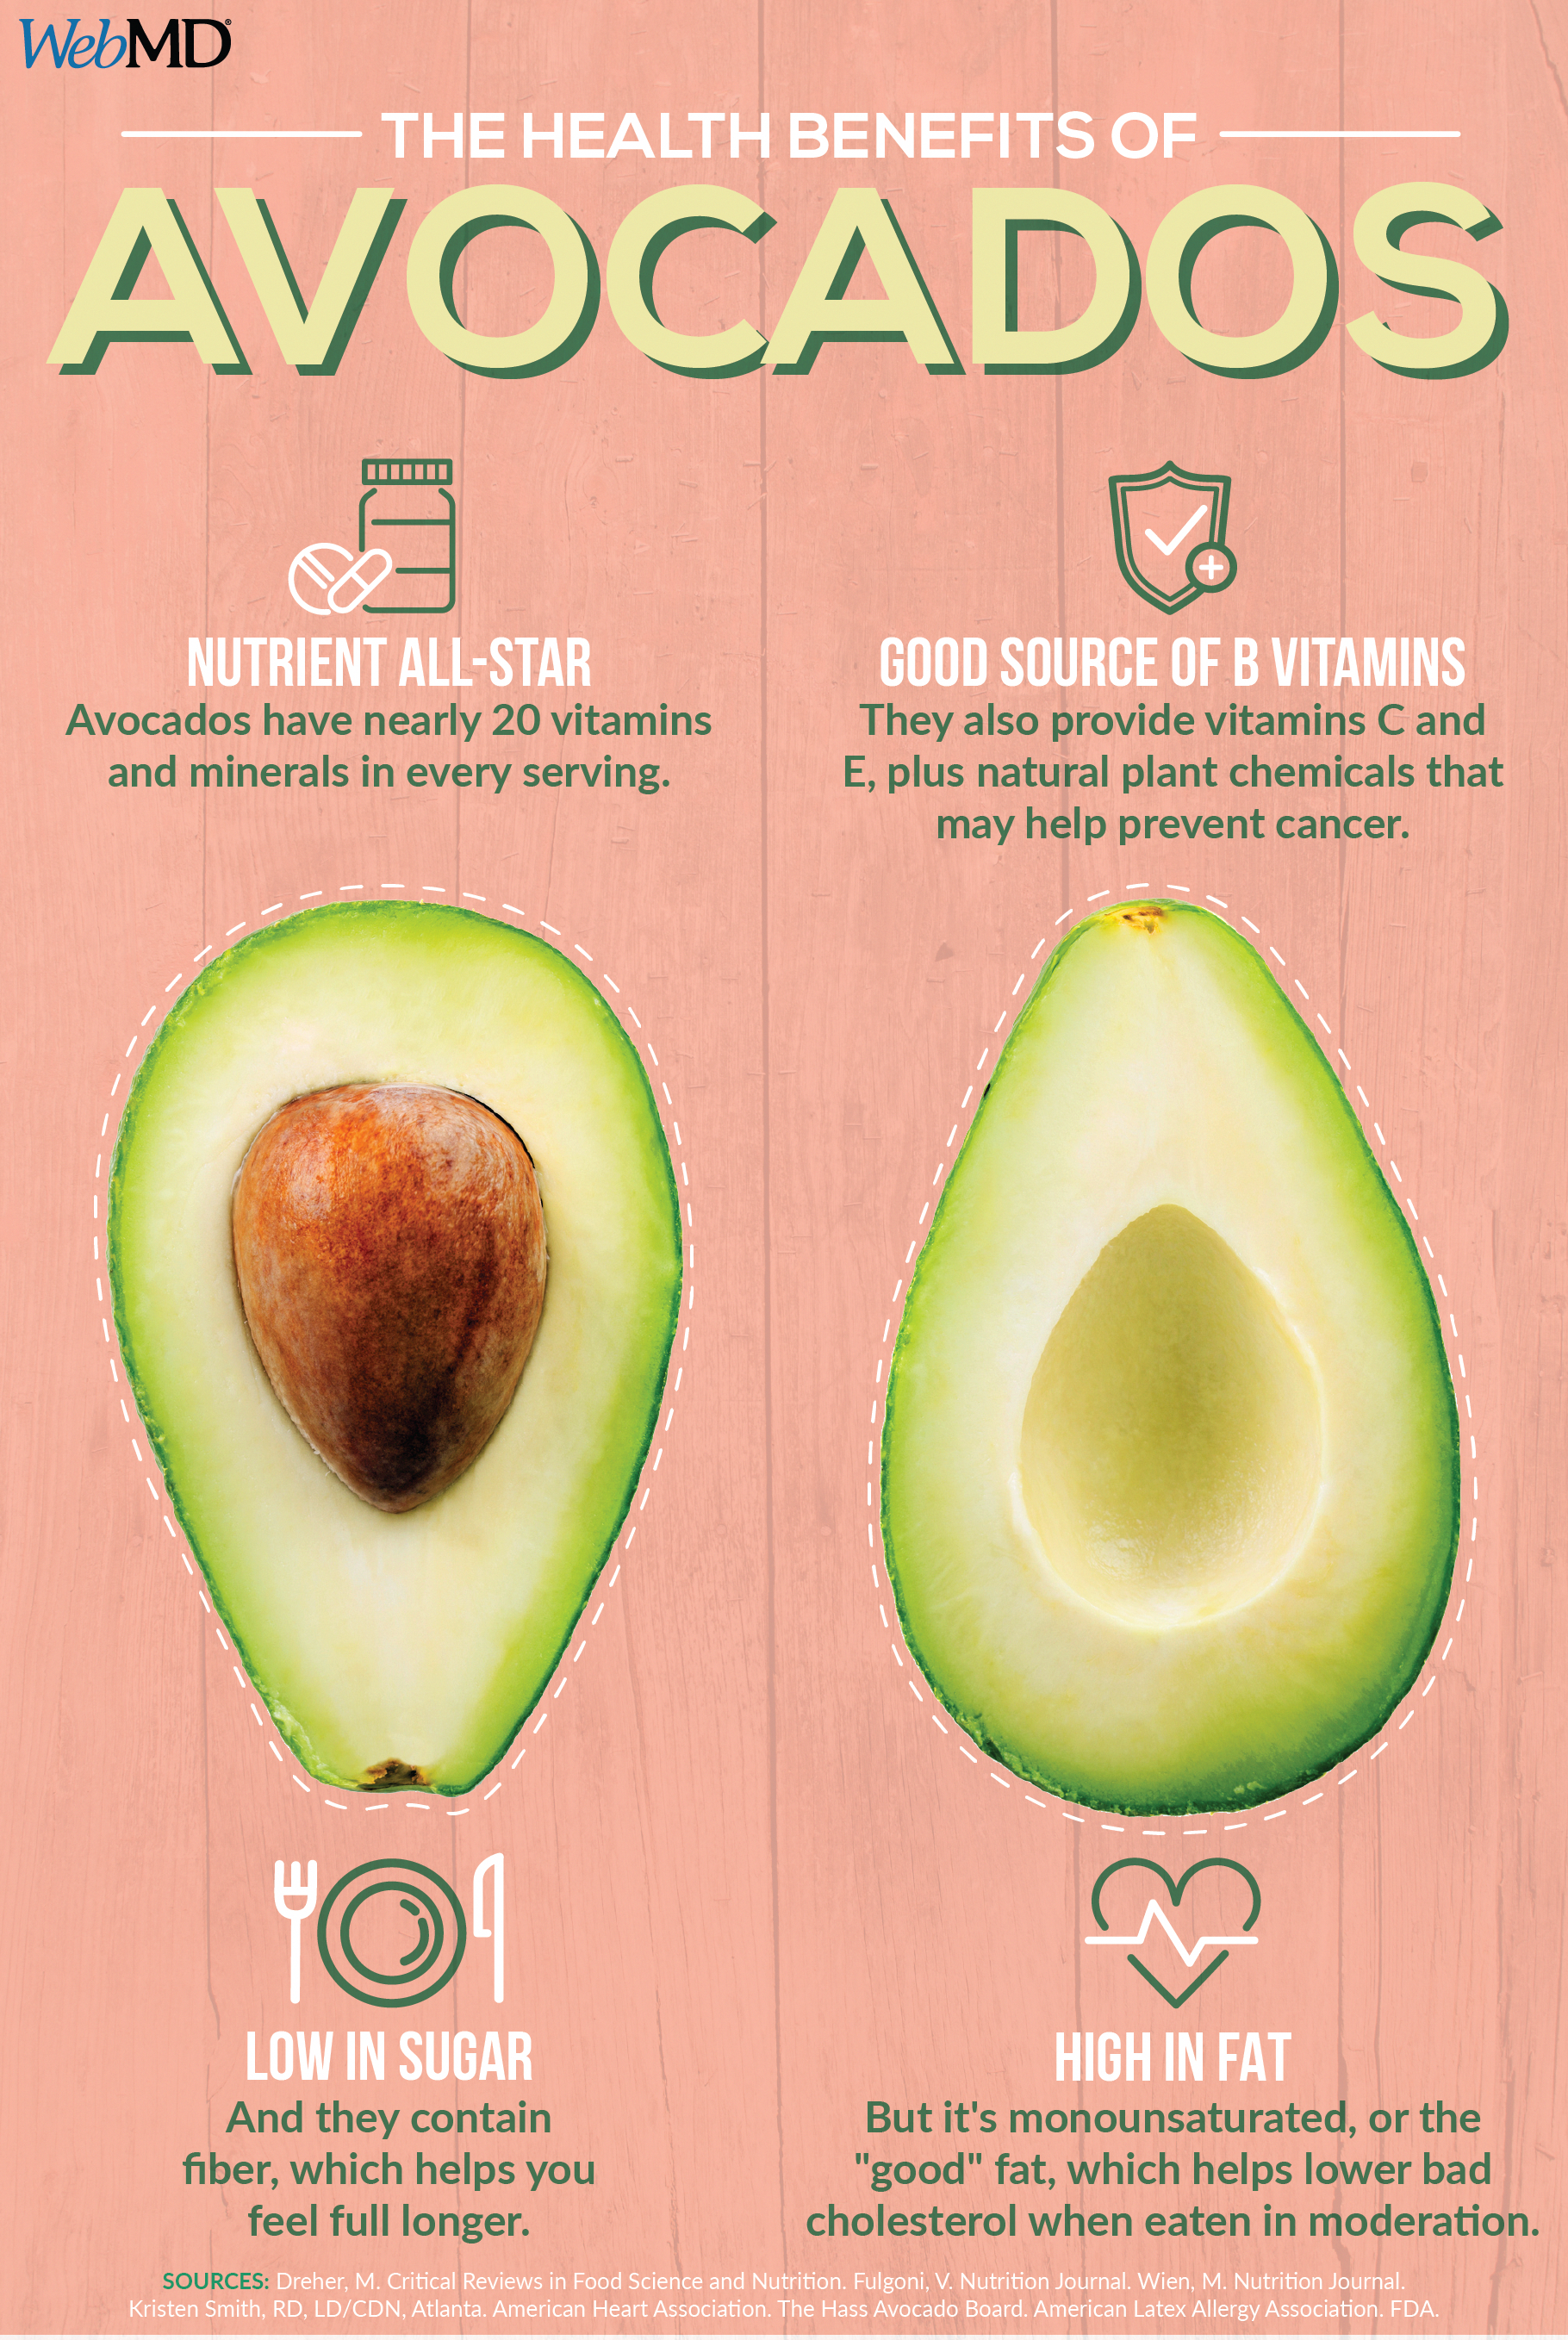 Avocados Aren T Just Delicious The Green Gems Are Packed With Good For You Vitamins Minerals And Nutrien Avocado Health Benefits Avocado Benefits Food Facts